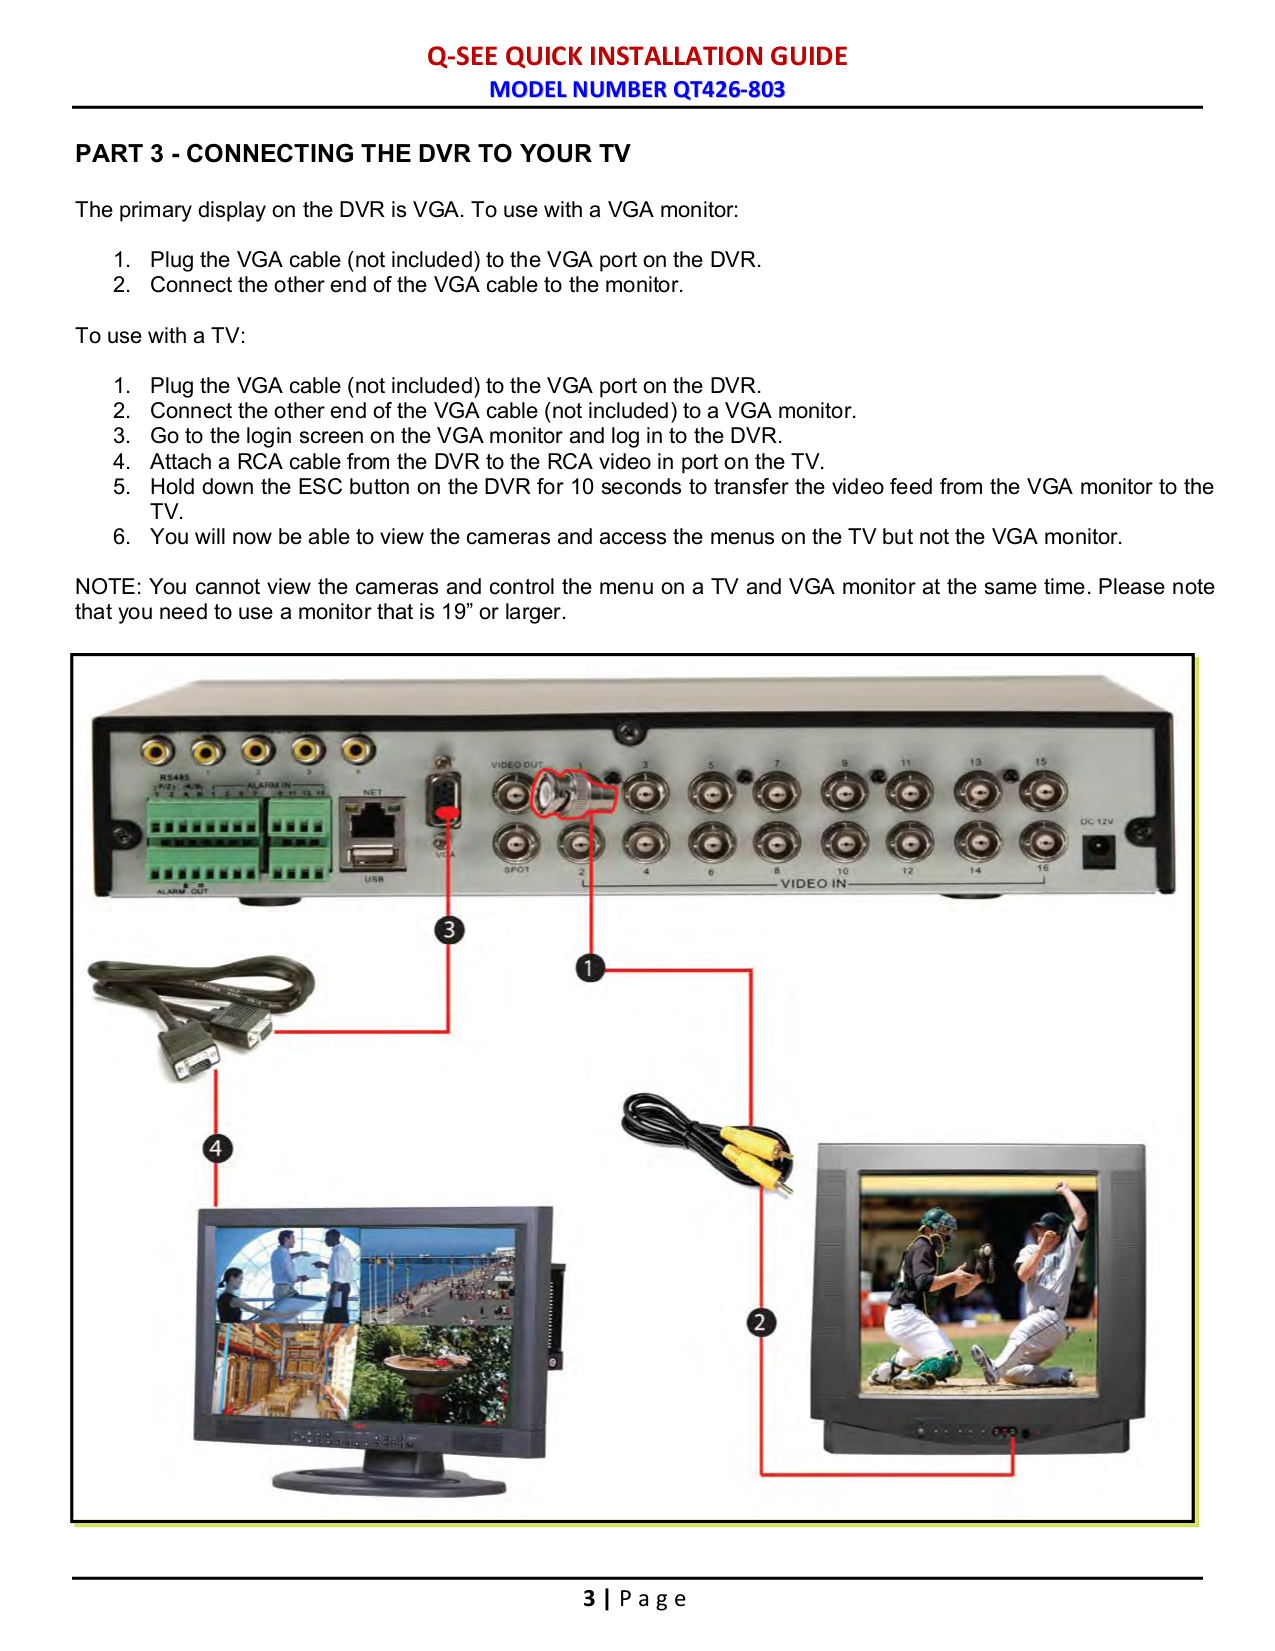 Q See Camera Wiring Diagram 27 Images Tv Distribution System Moreover Winnebago Diagrams Security Qsds14273w Pdf Page Preview